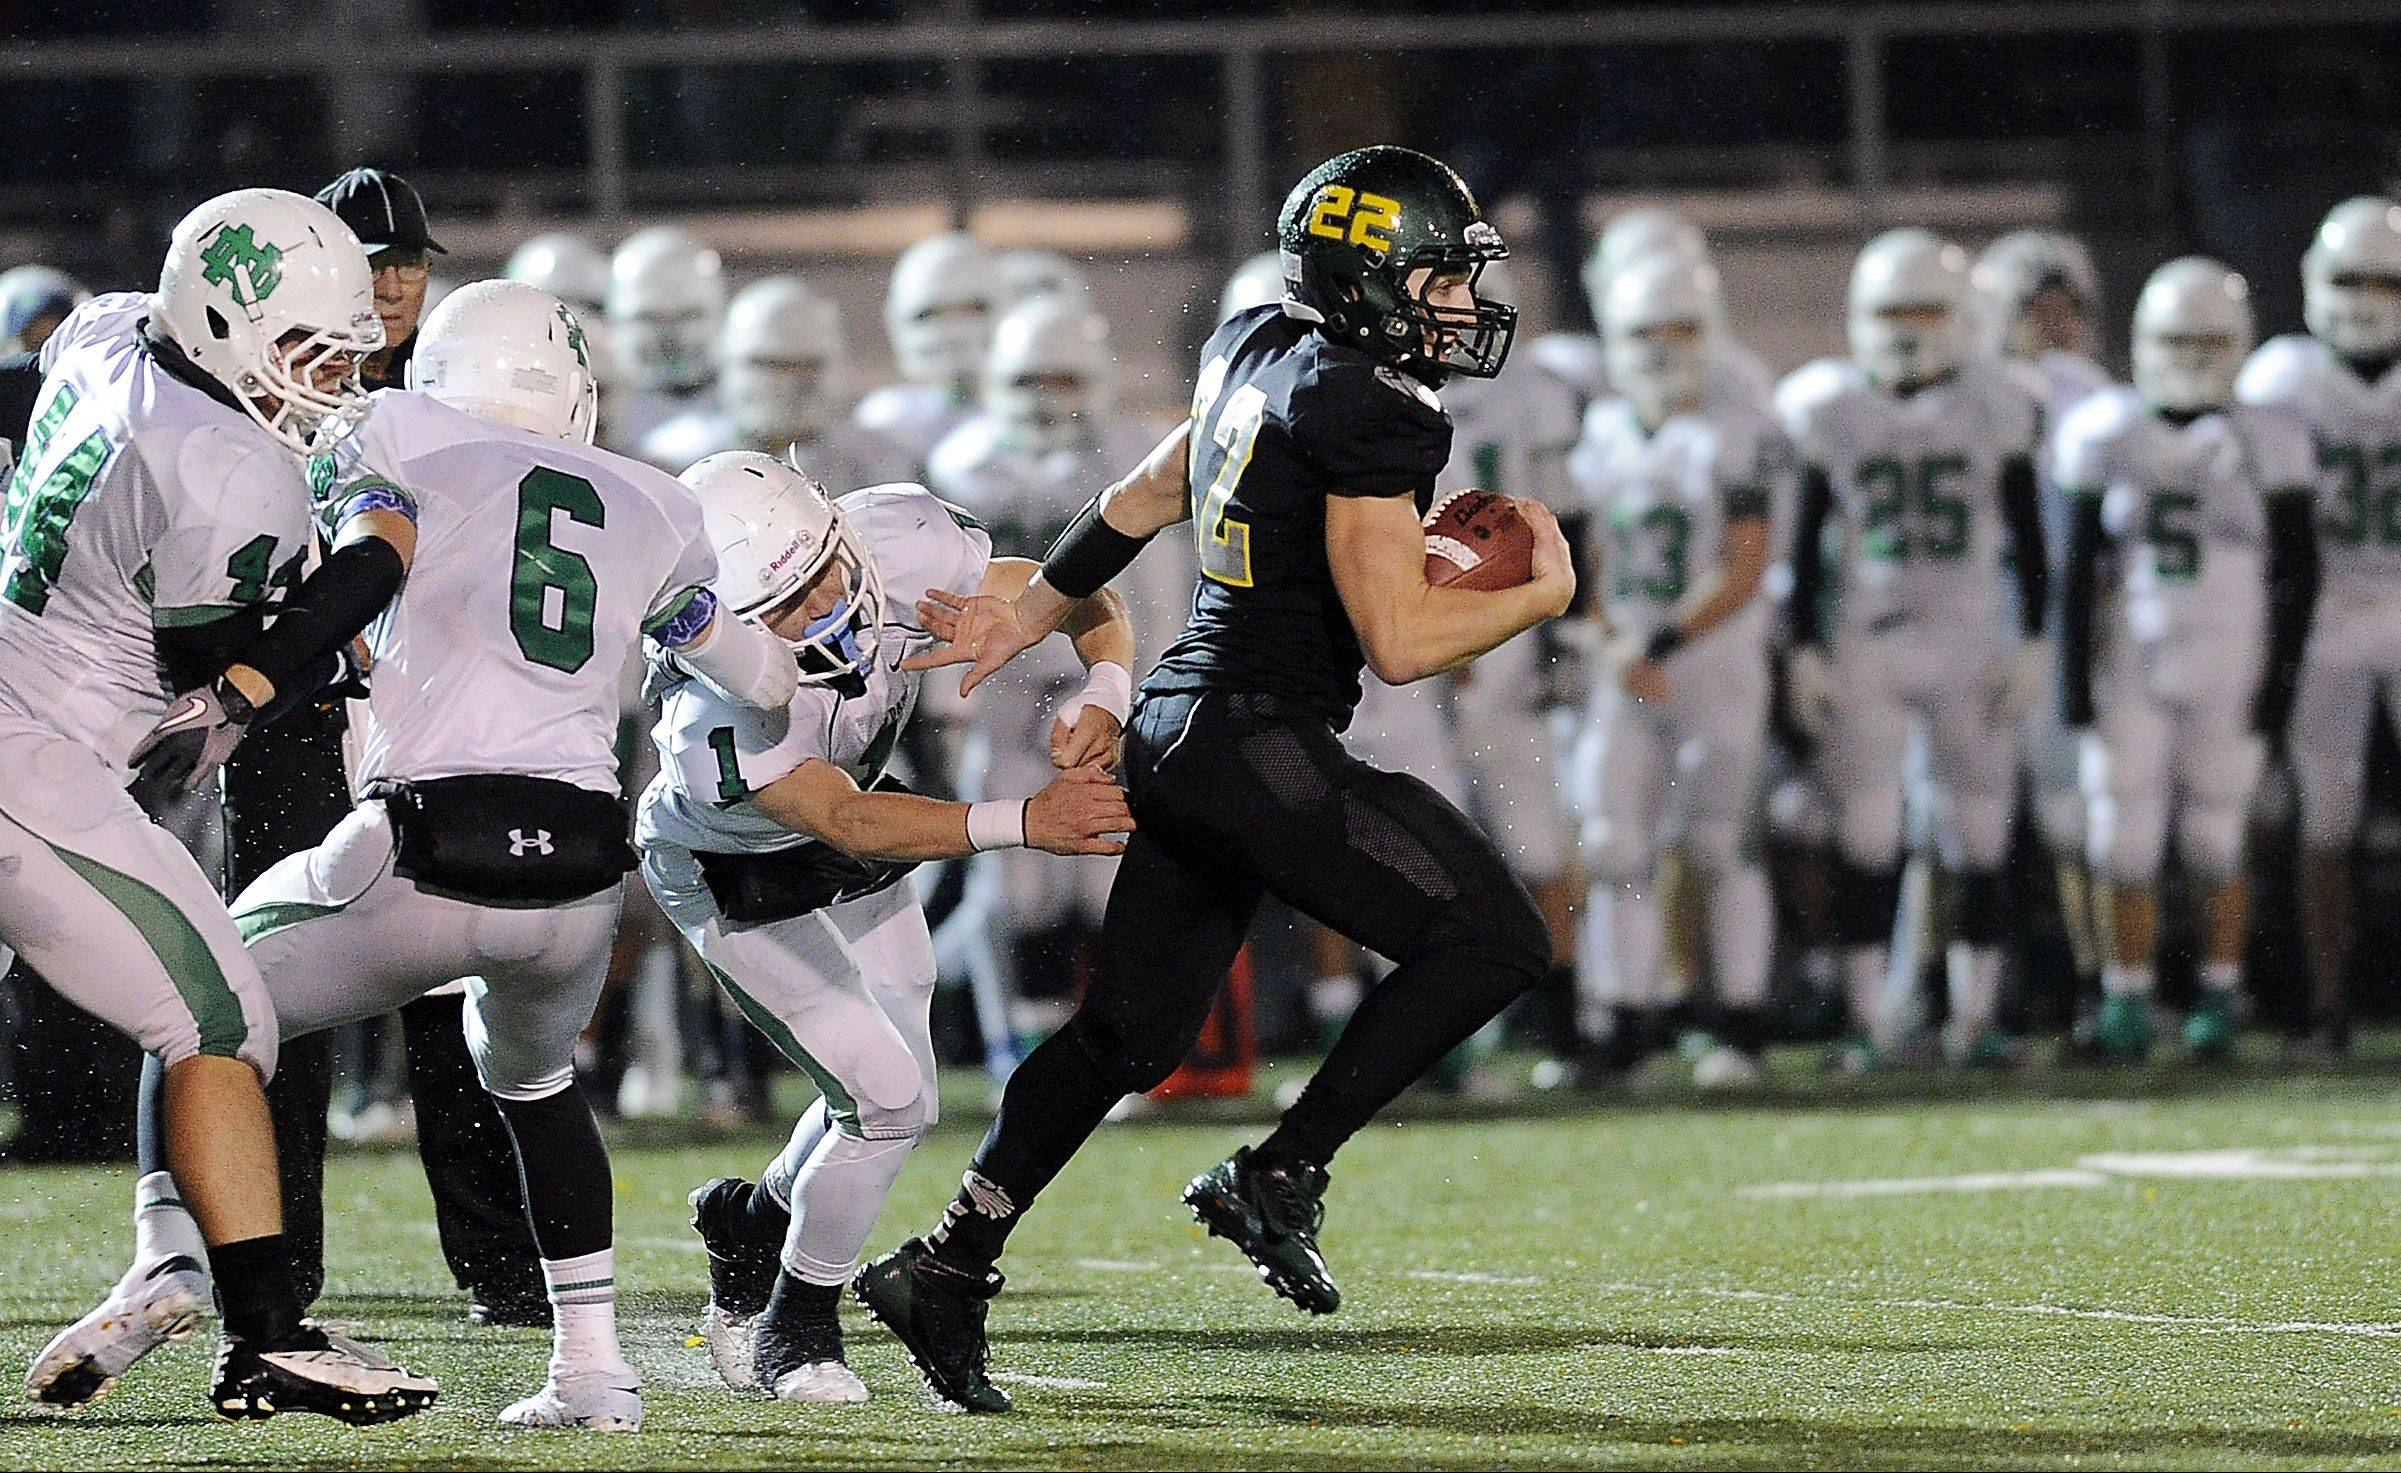 Fremd�s Garrett Groot scrambles for a 44-yard run in the second quarter against Notre Dame in Class 8A playoffs action at Fremd on Friday.